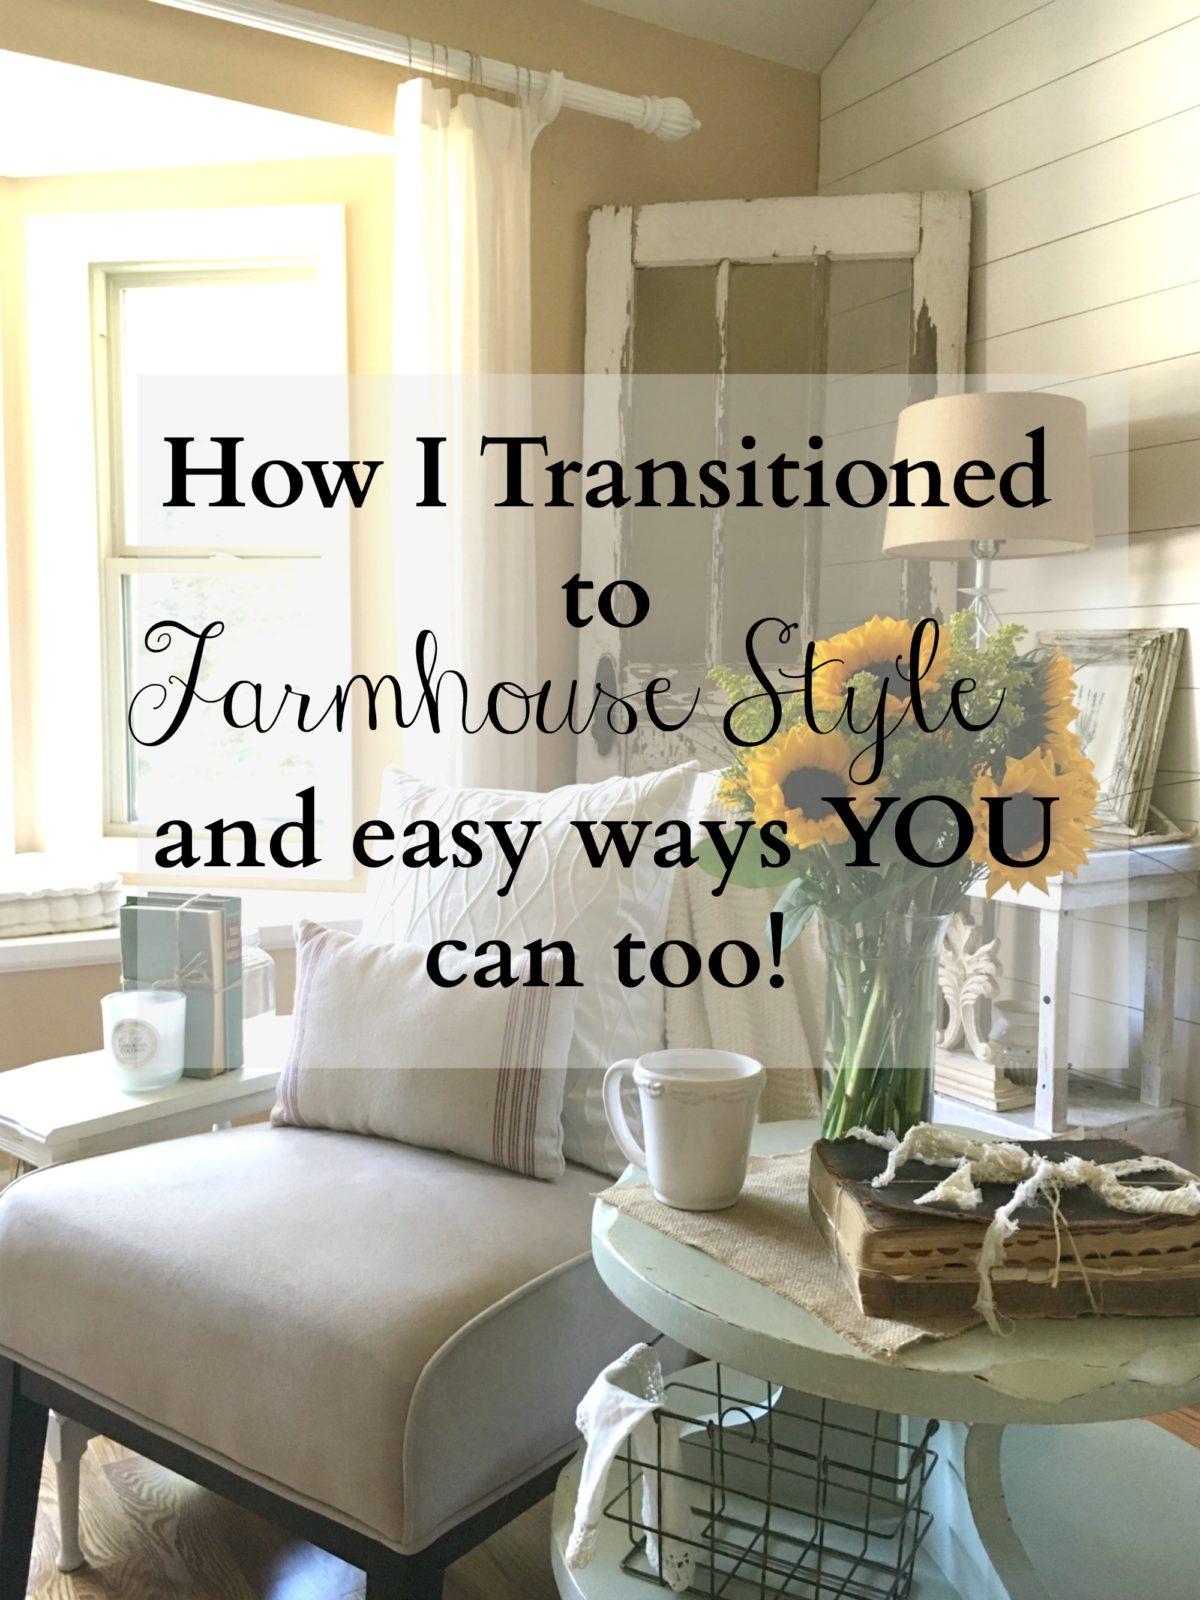 How I Transitioned To Farmhouse Style Sarah Joy Blog